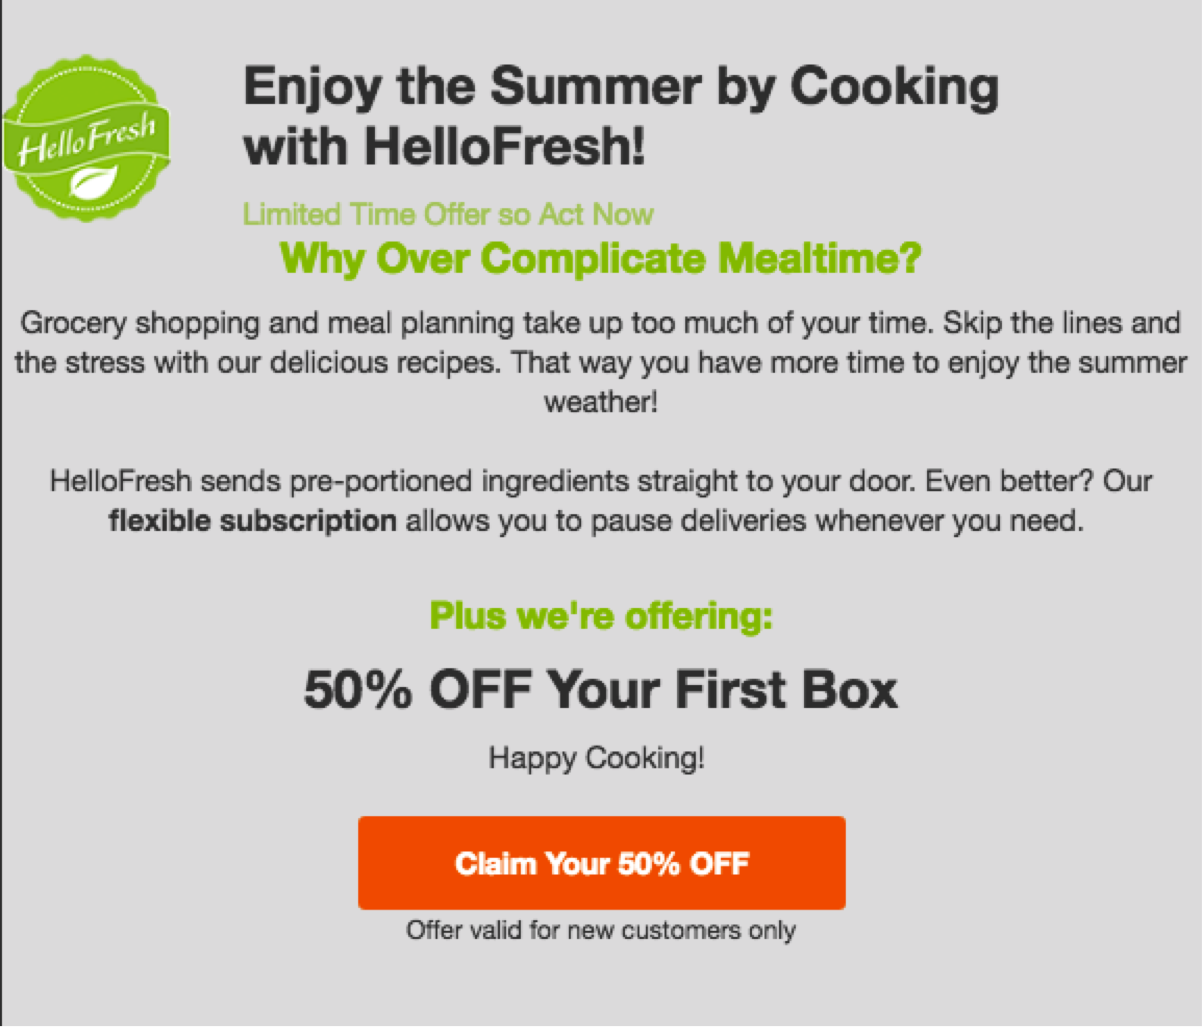 Price cut limited time offer shop now for the best selection hurry - Why It Works Rather Than Offer A Different Entry Level Product To Entice New Customers Hellofresh Simply Discounts Their Main Offering For A First Time